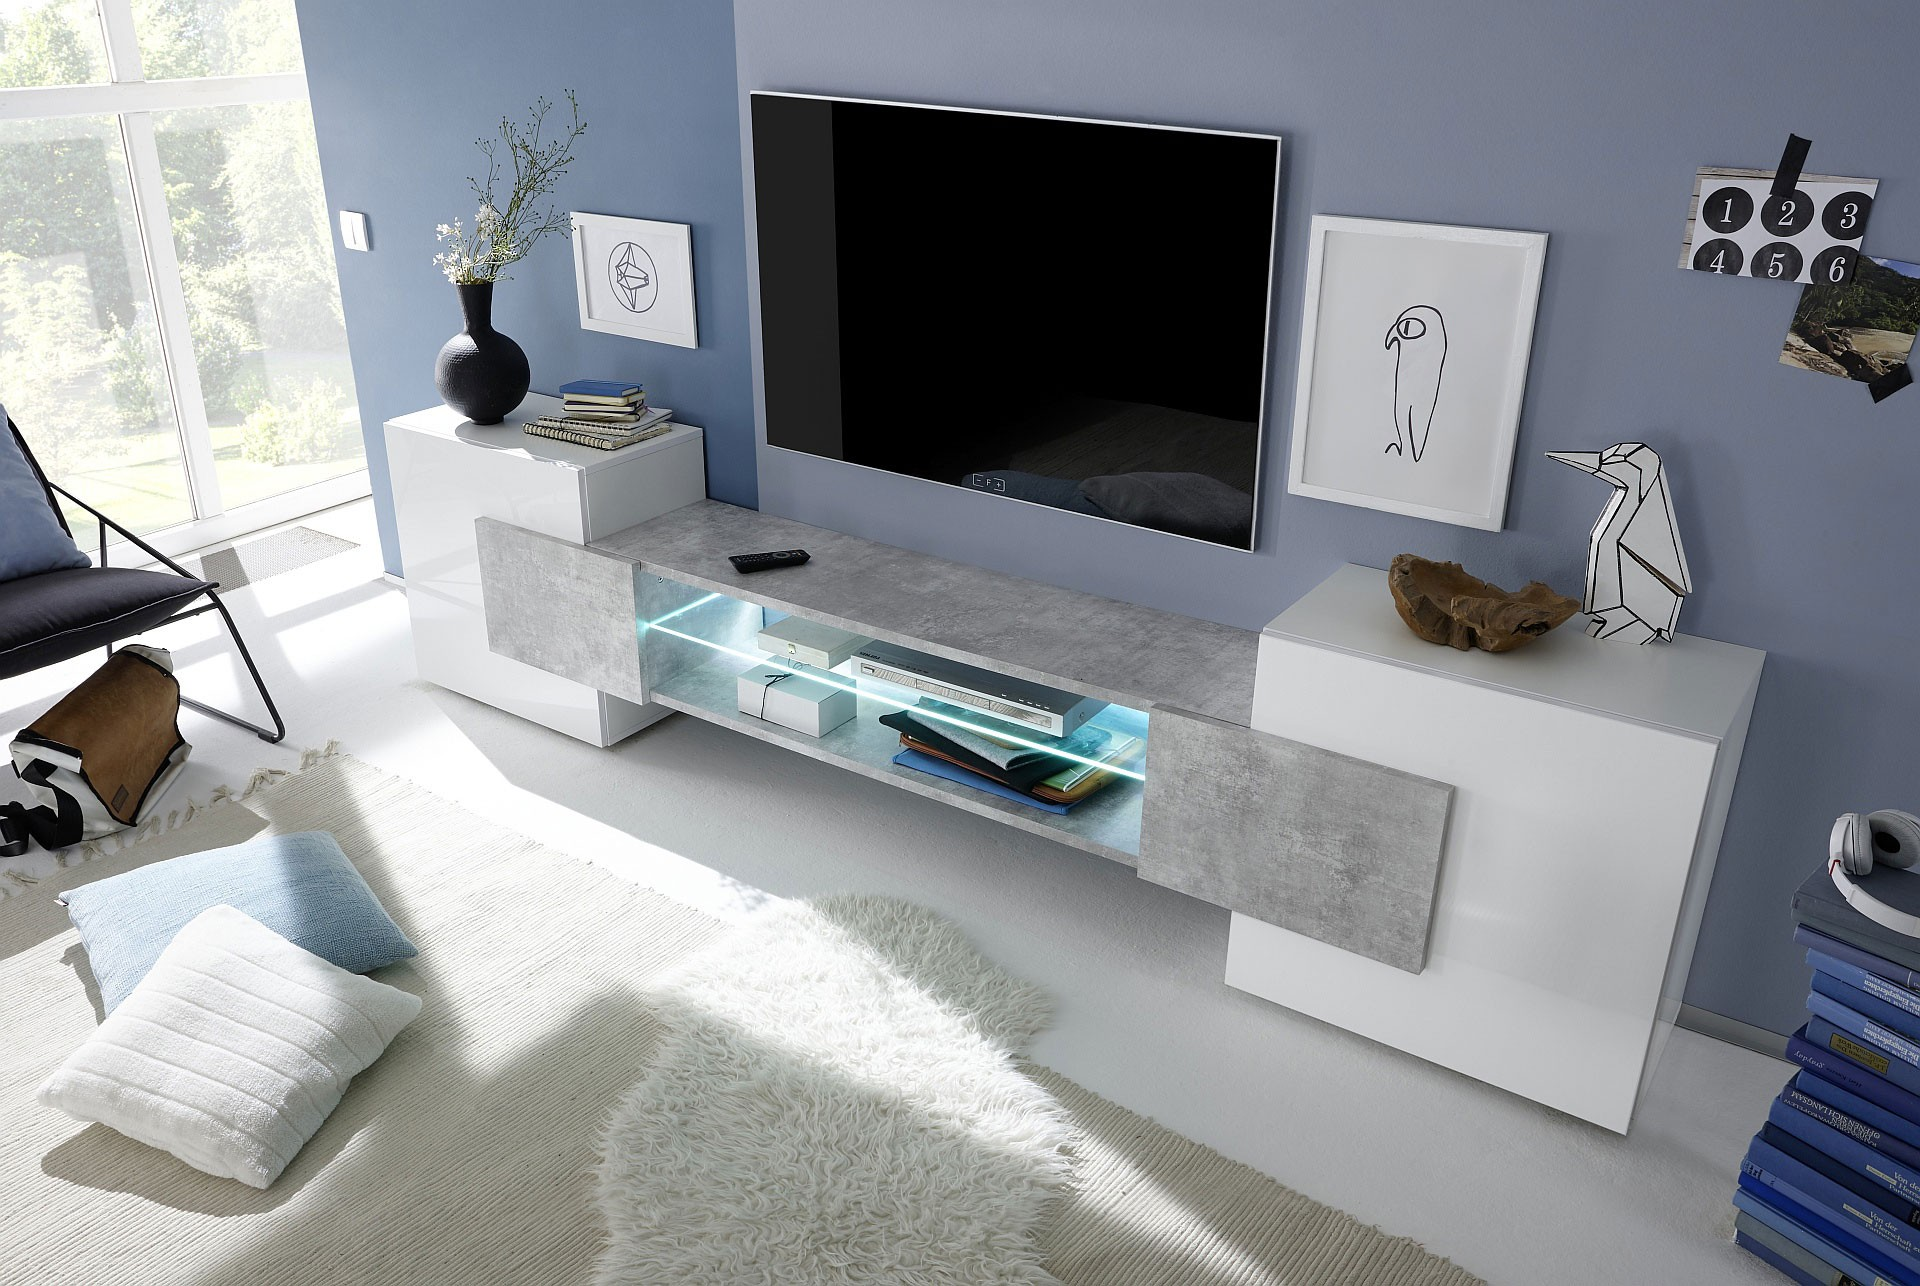 Meuble tele blanc design 8 id es de d coration Des idees de decoration interieure